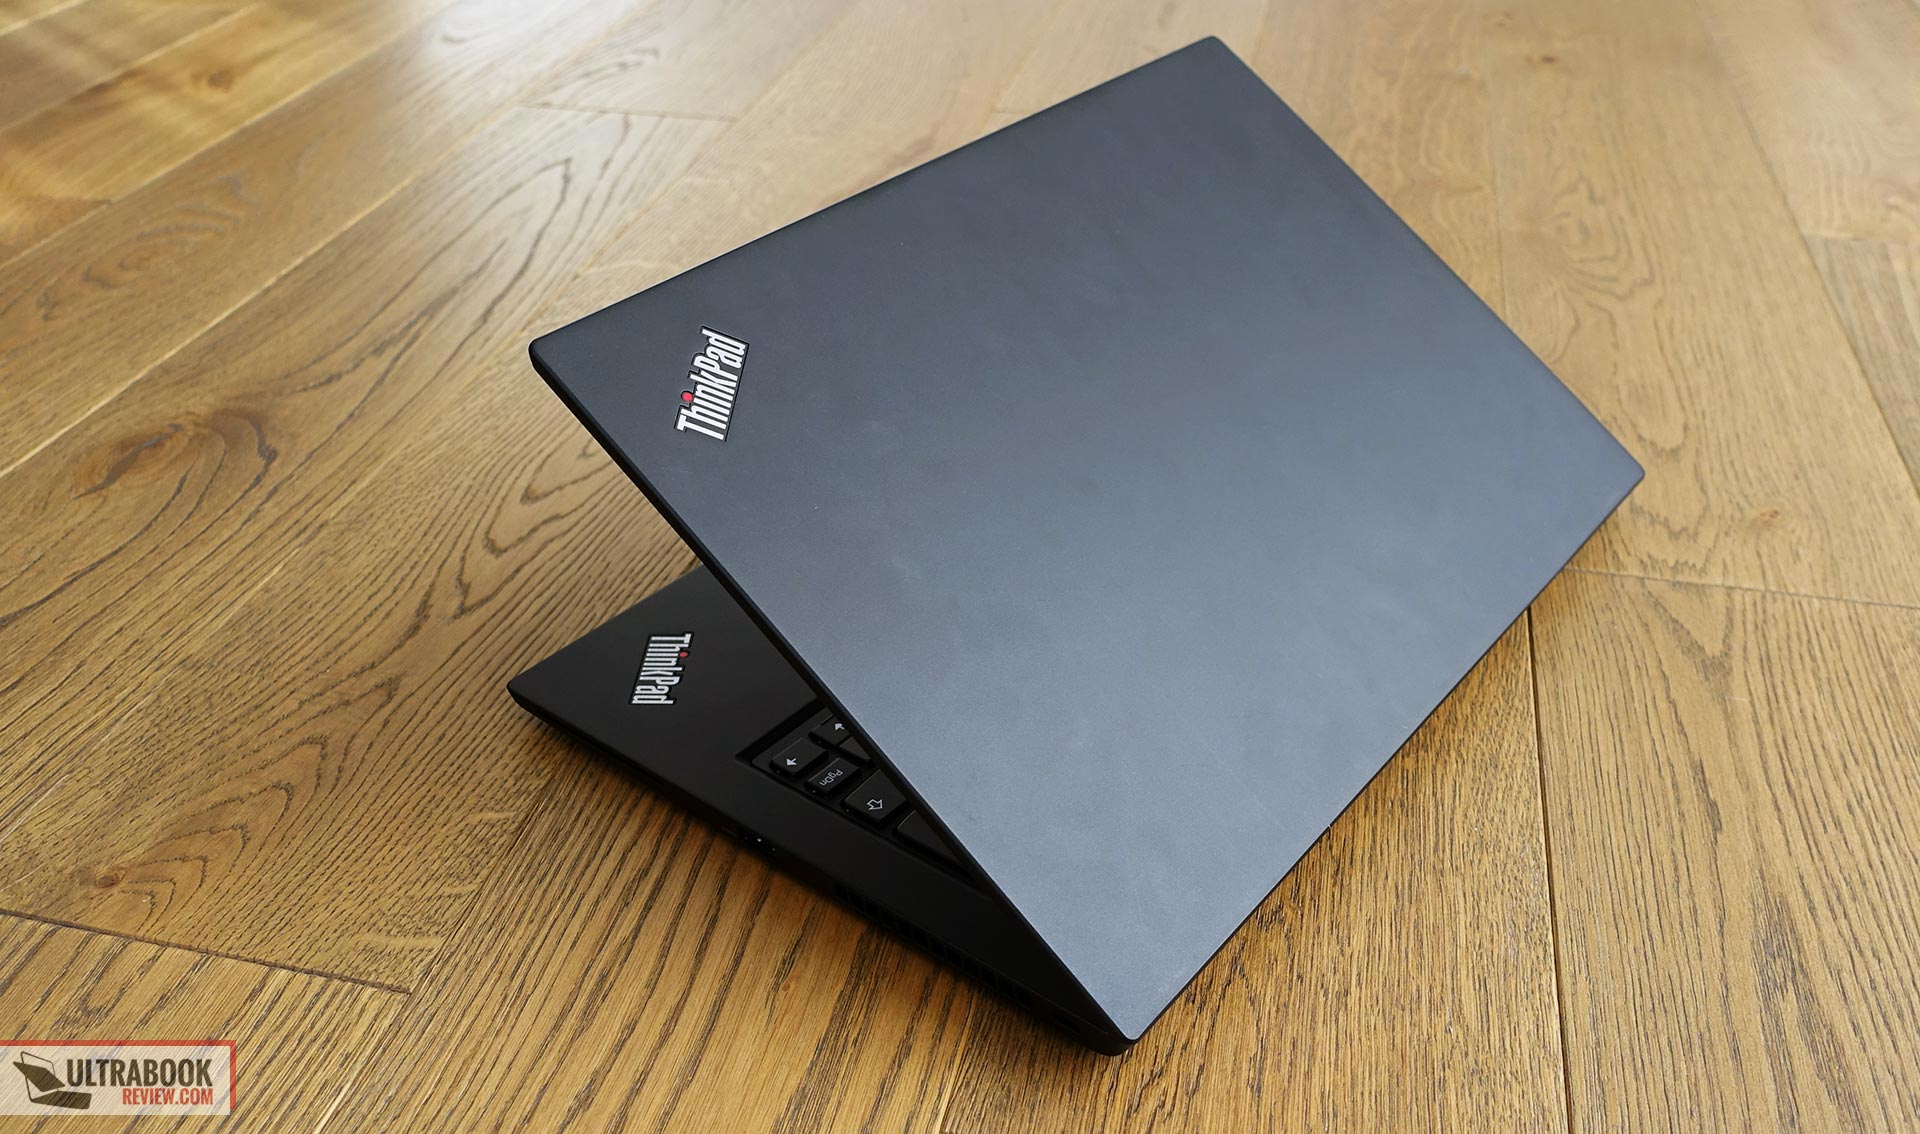 Lenovo ThinkPad T480S review (Core i7-8650U, Intel UHD 620, WQHD screen)